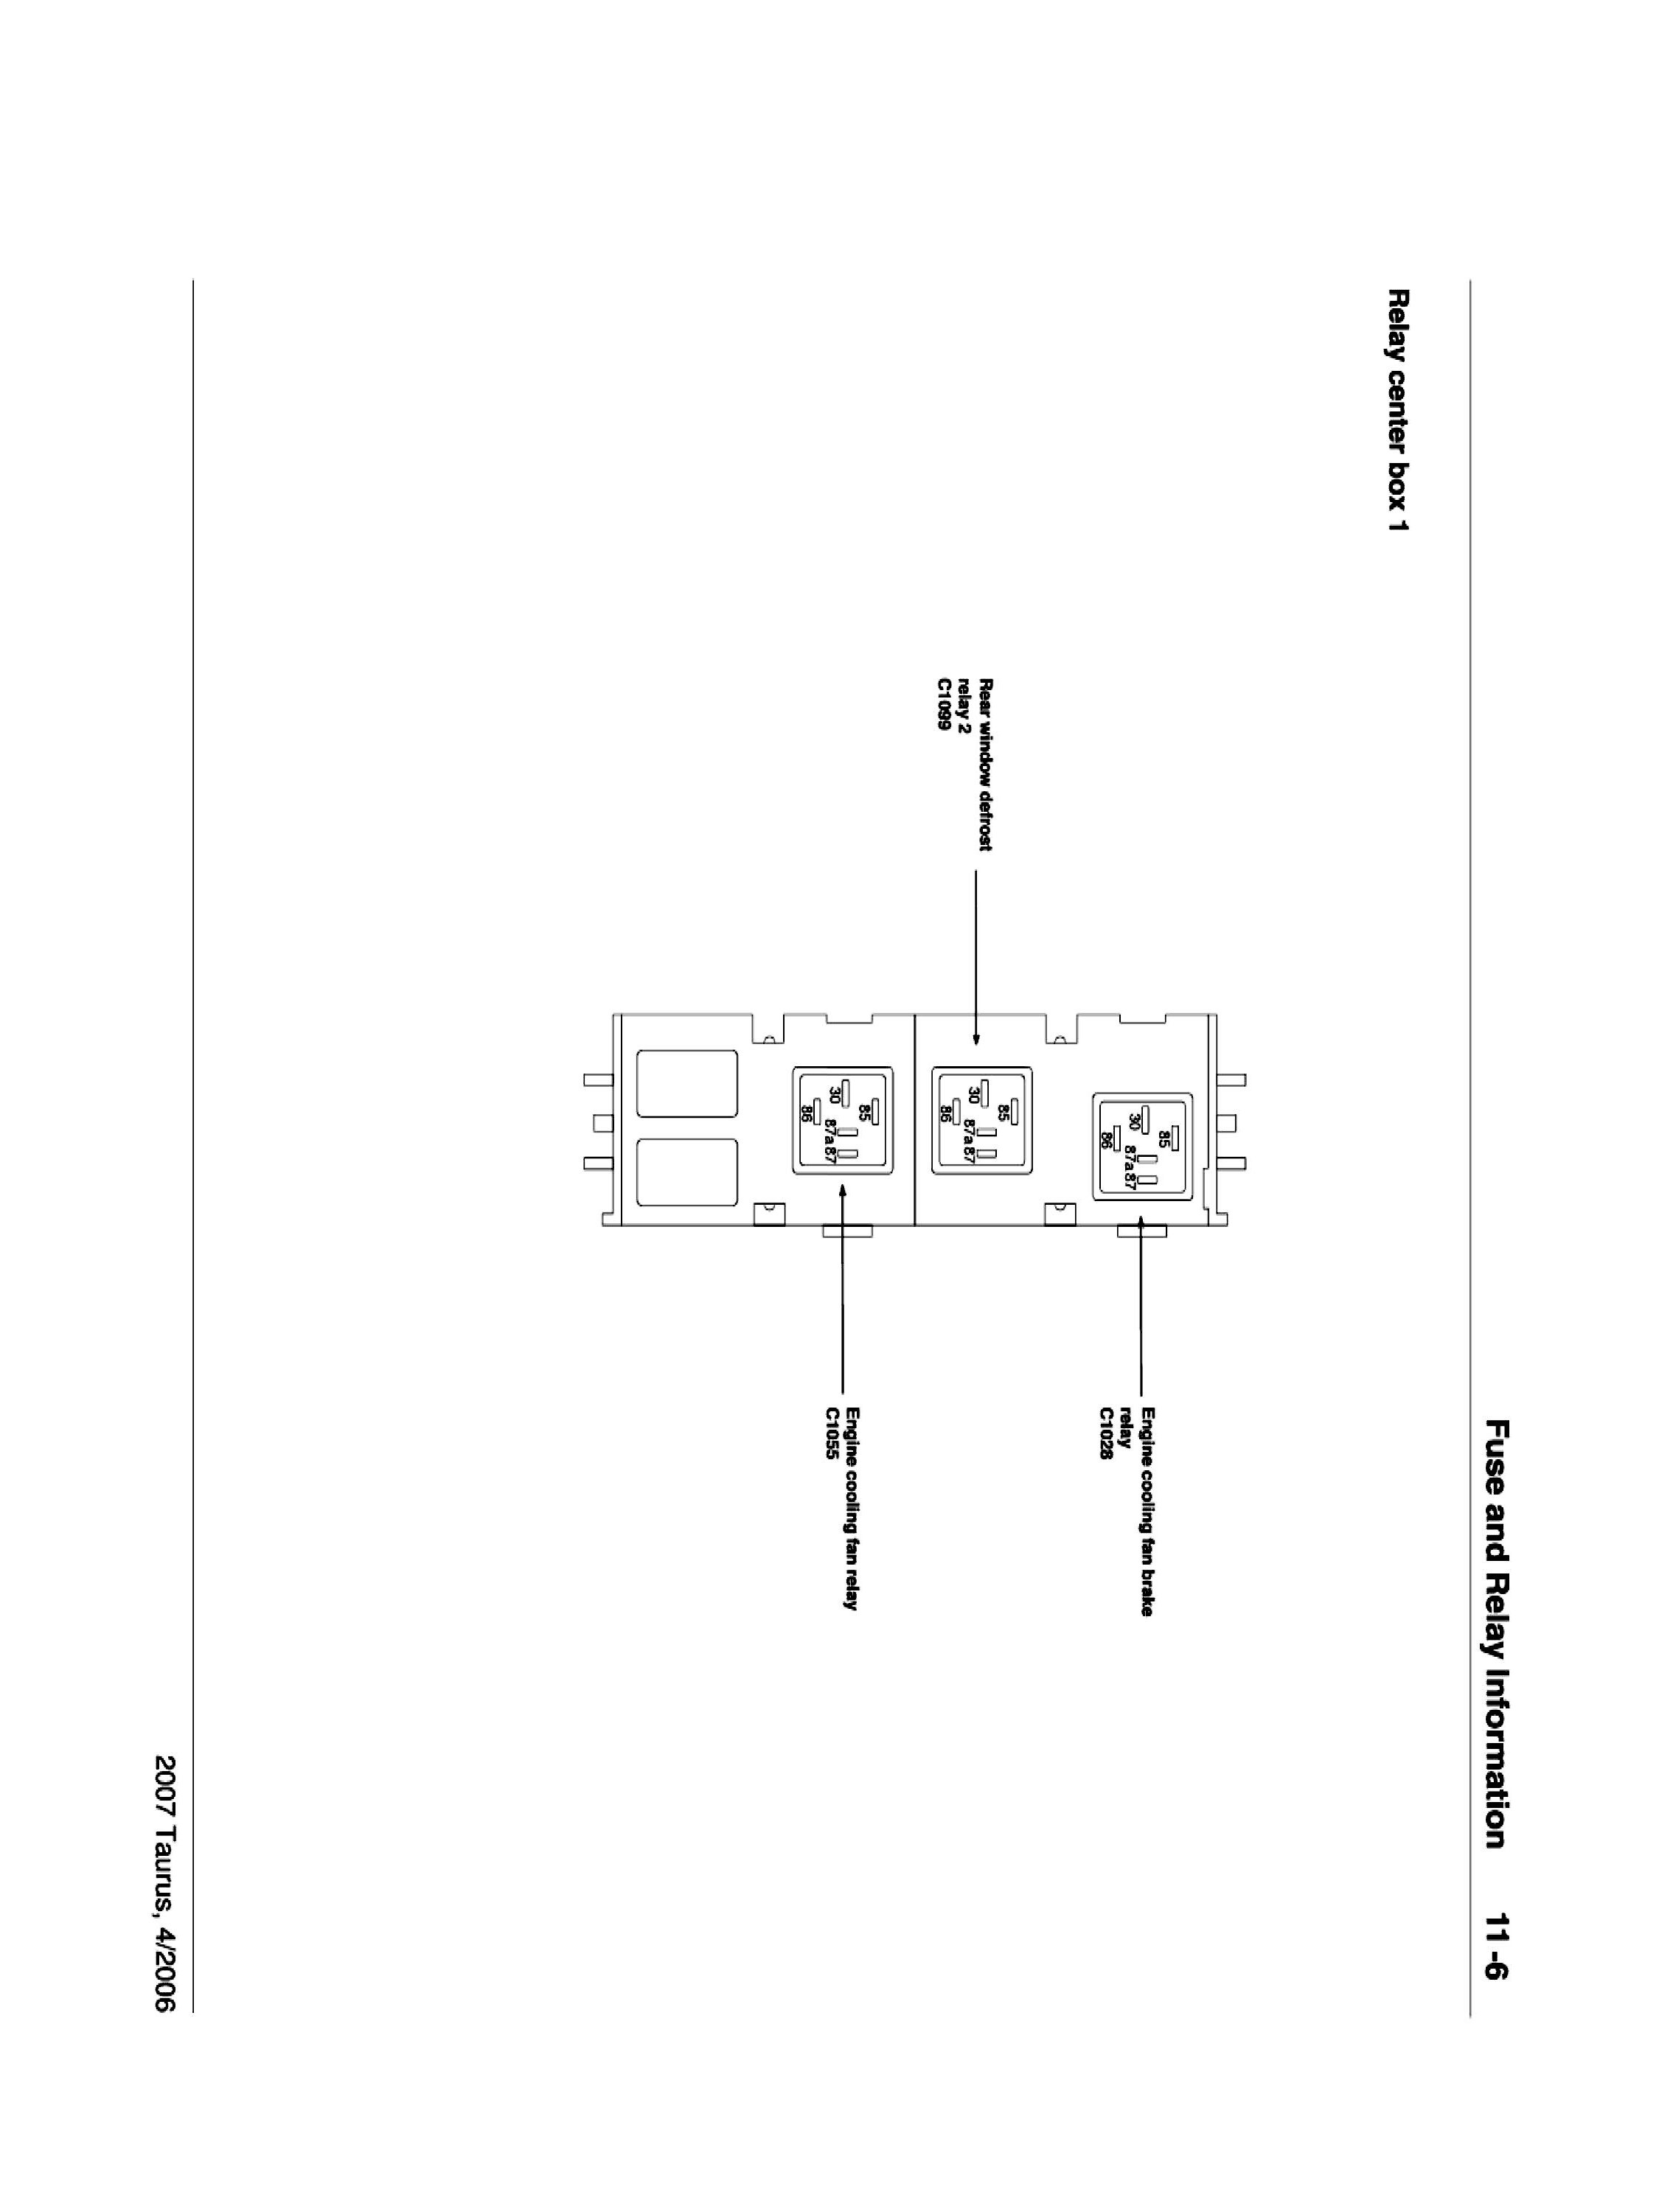 Where Can I Find A Wiring Diagram Of The Bose System In An